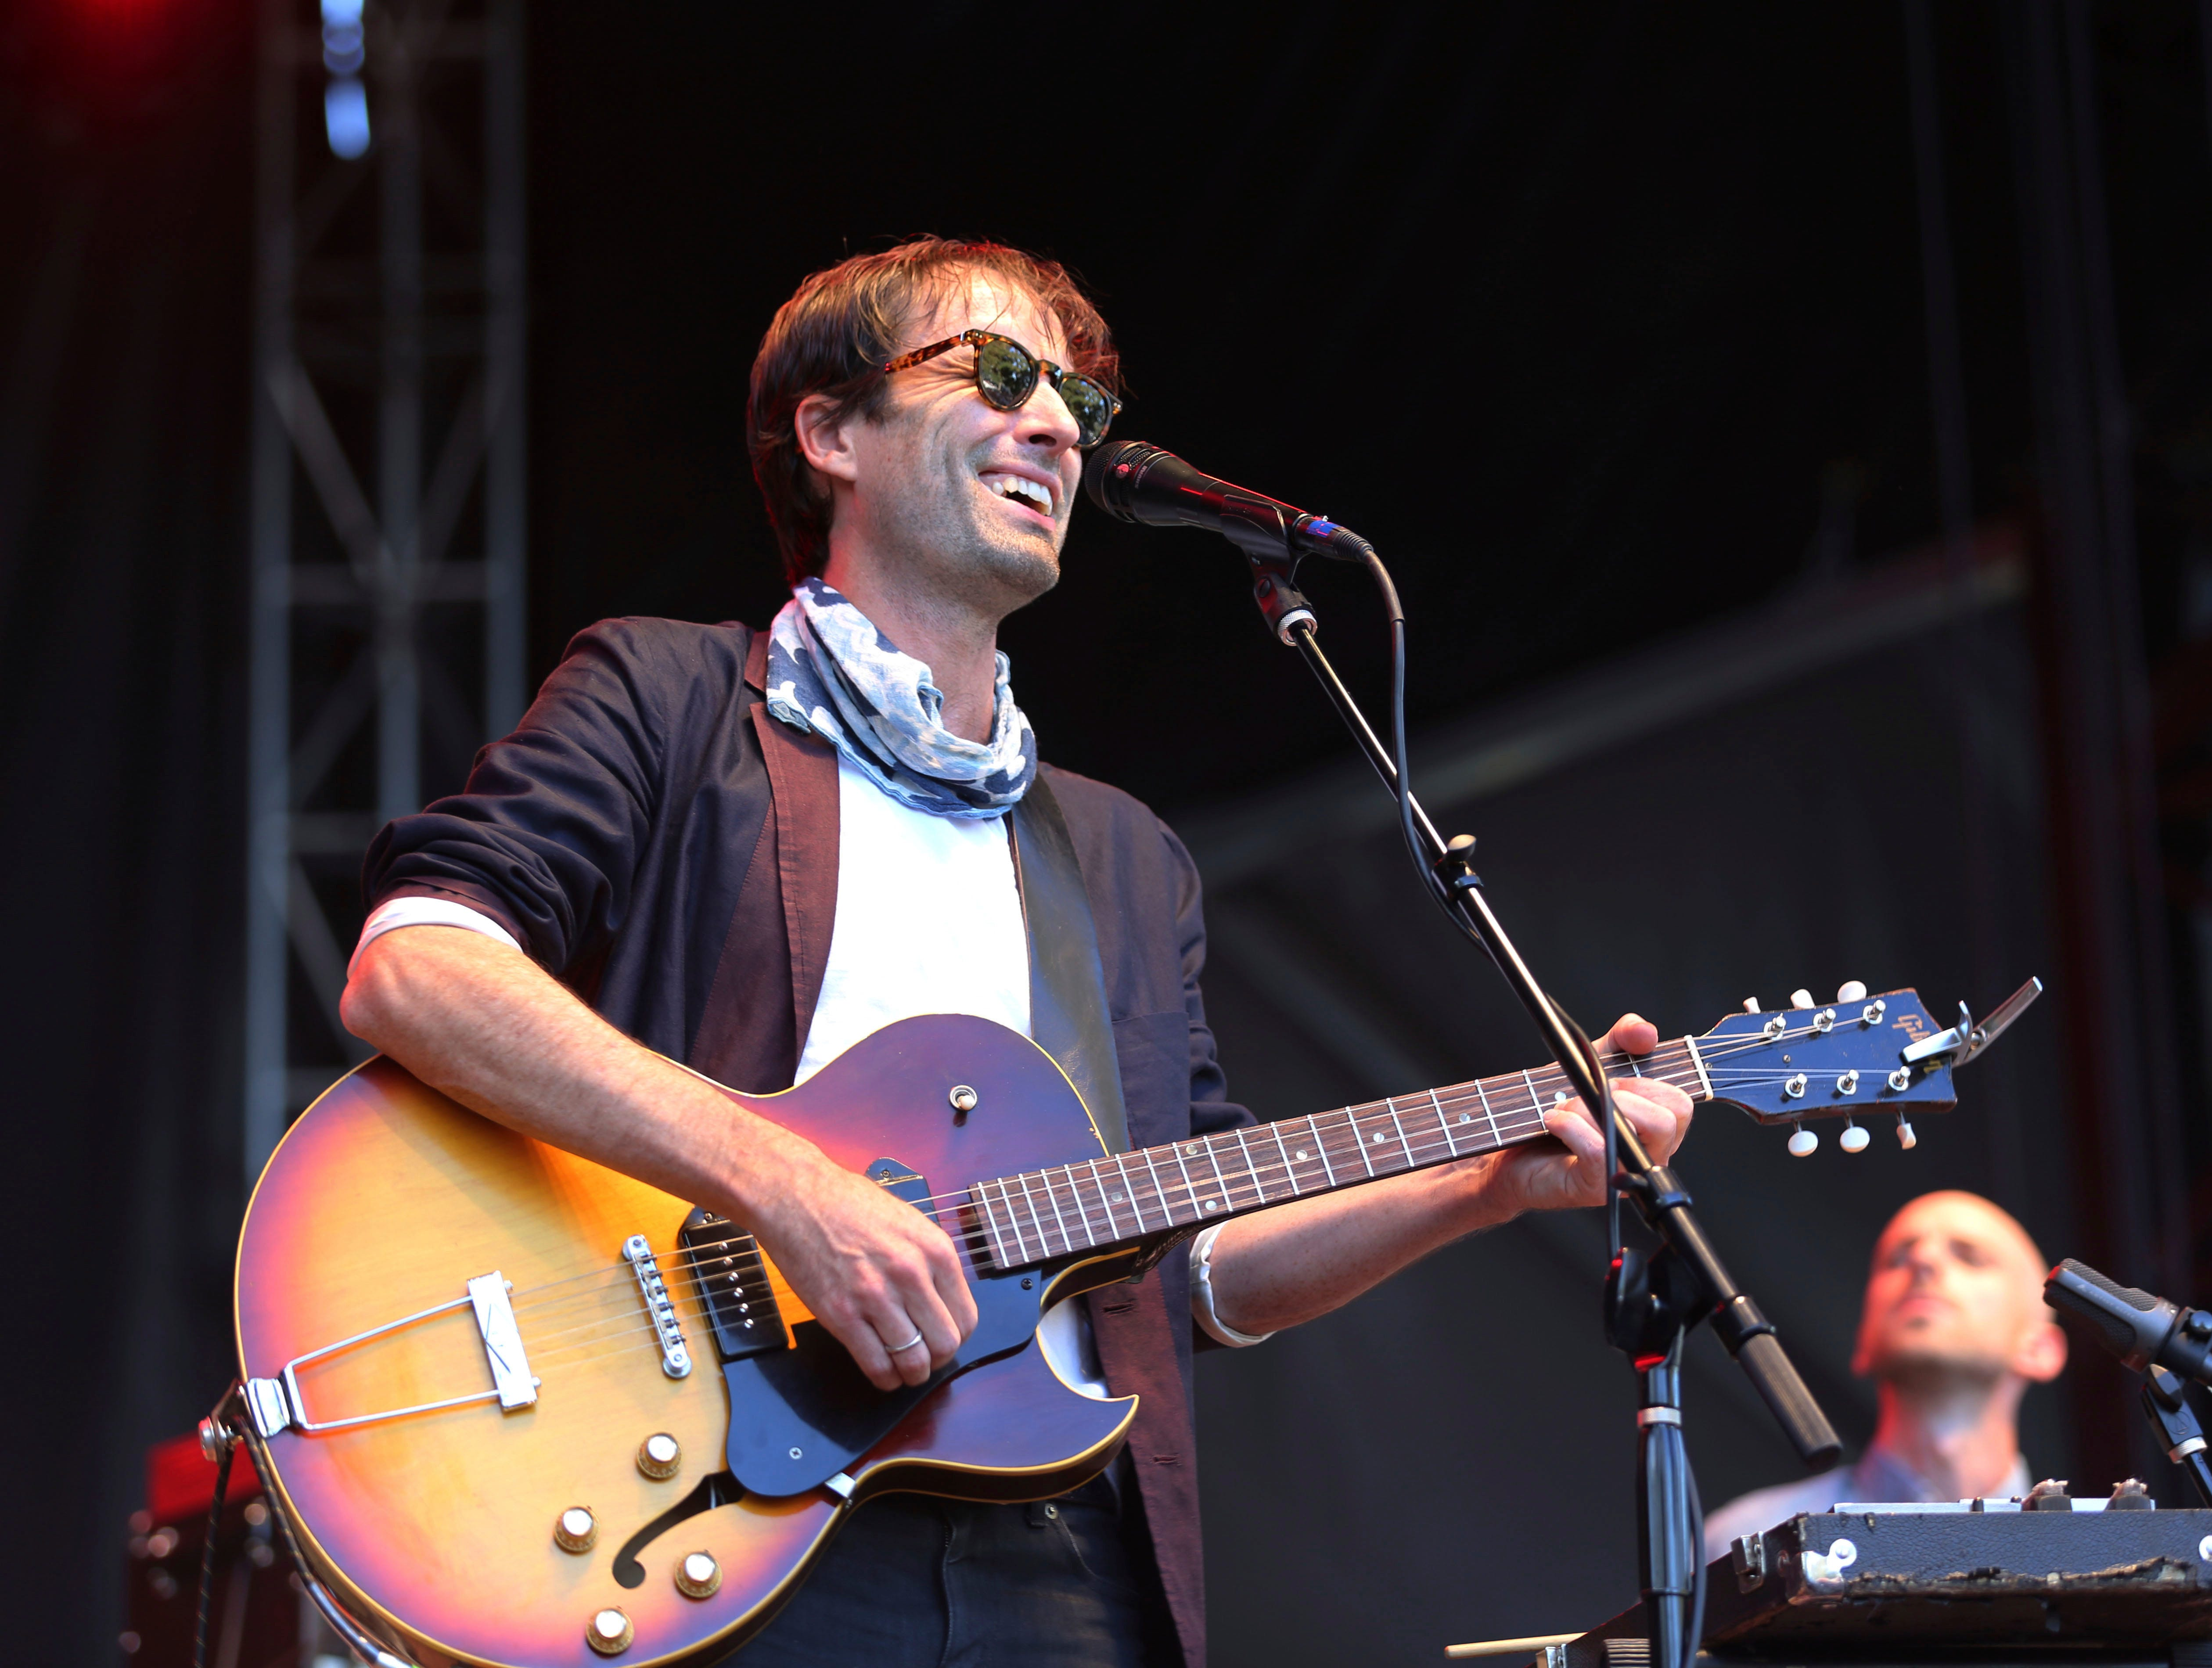 Andrew Bird performs on day two of the inaugural 2017 Arroyo Seco Music Festival on Sunday, June 25, 2017, in Pasadena, Calif. (Photo by Joseph Longo/Invision/AP)